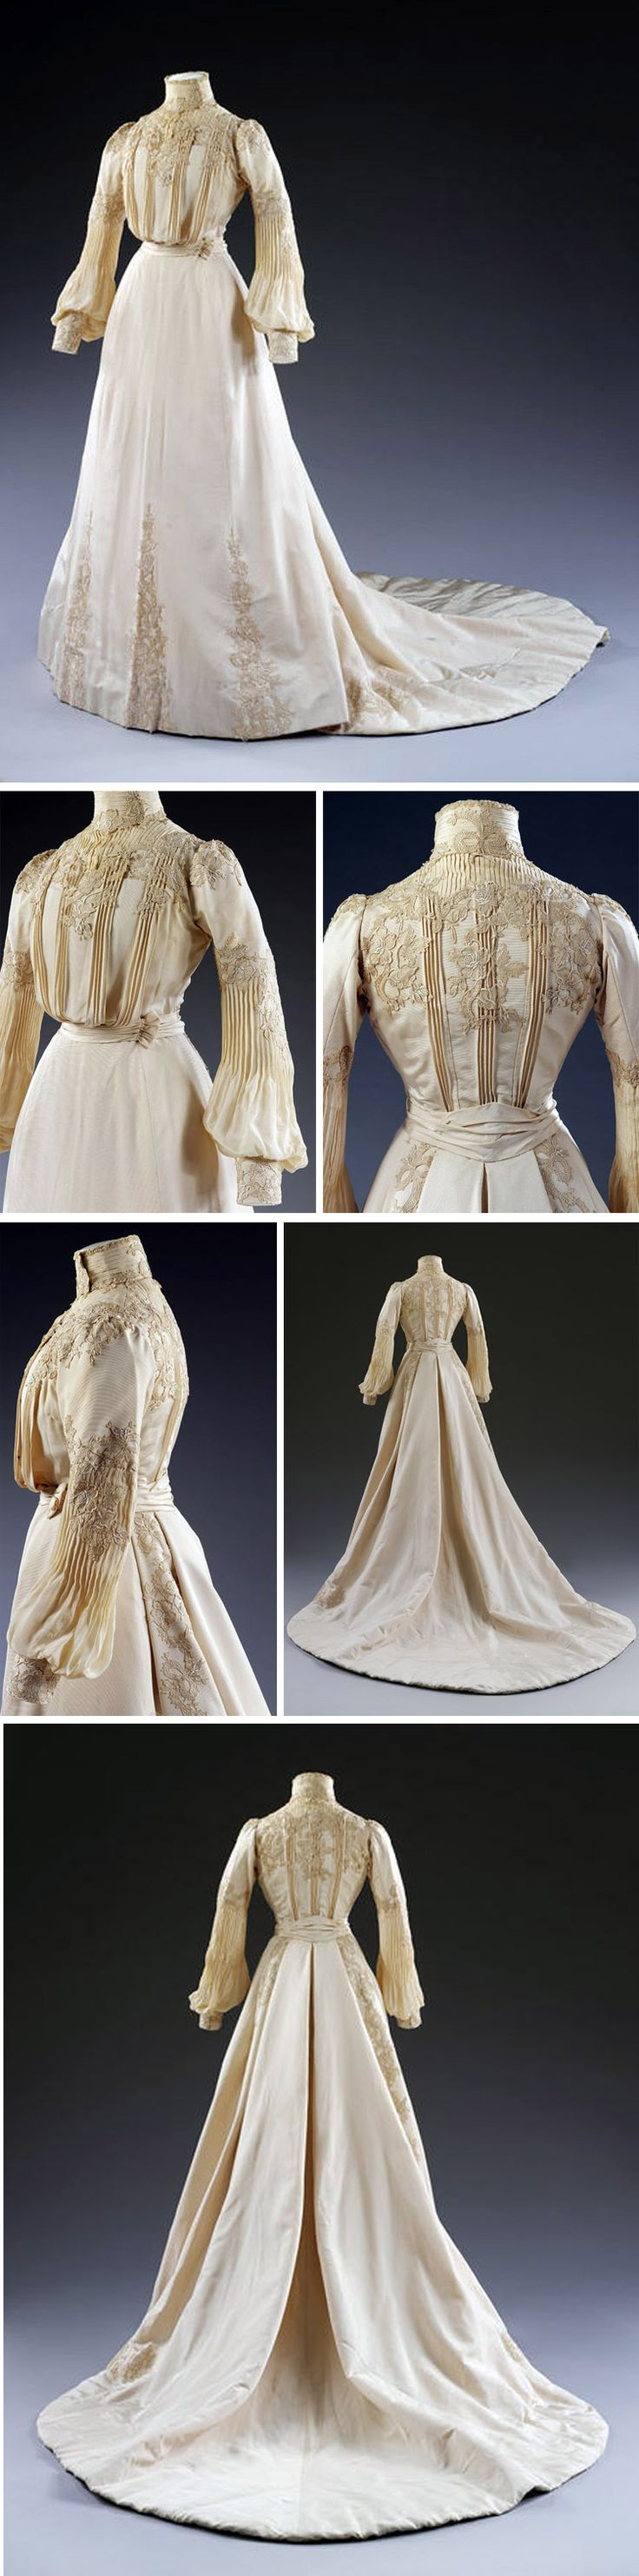 Wedding dress, Houghton & Dalton, London, 1902. Silk, two pieces. Victoria & Albert Museum